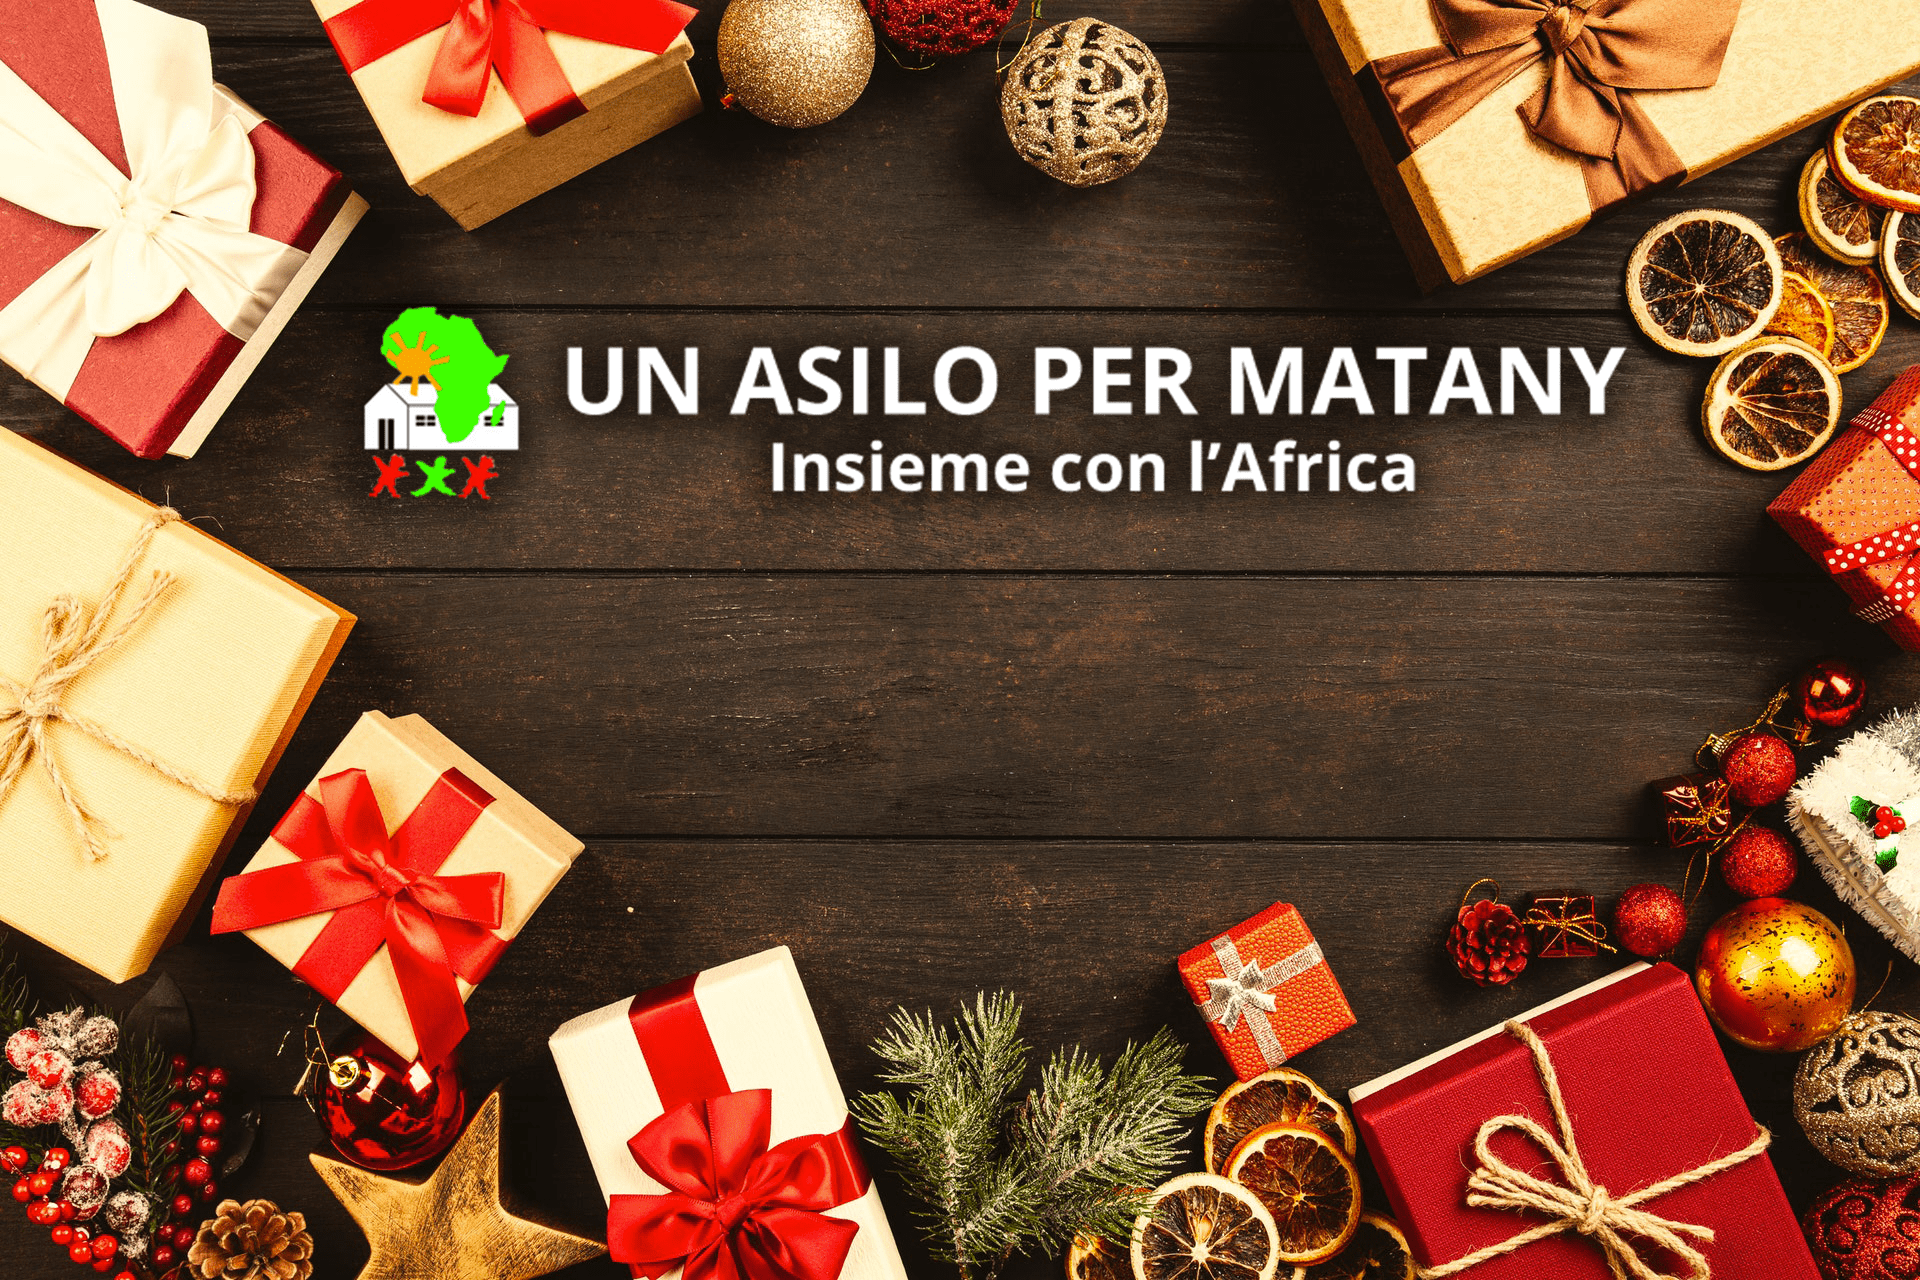 Eventi di beneficenza per Natale